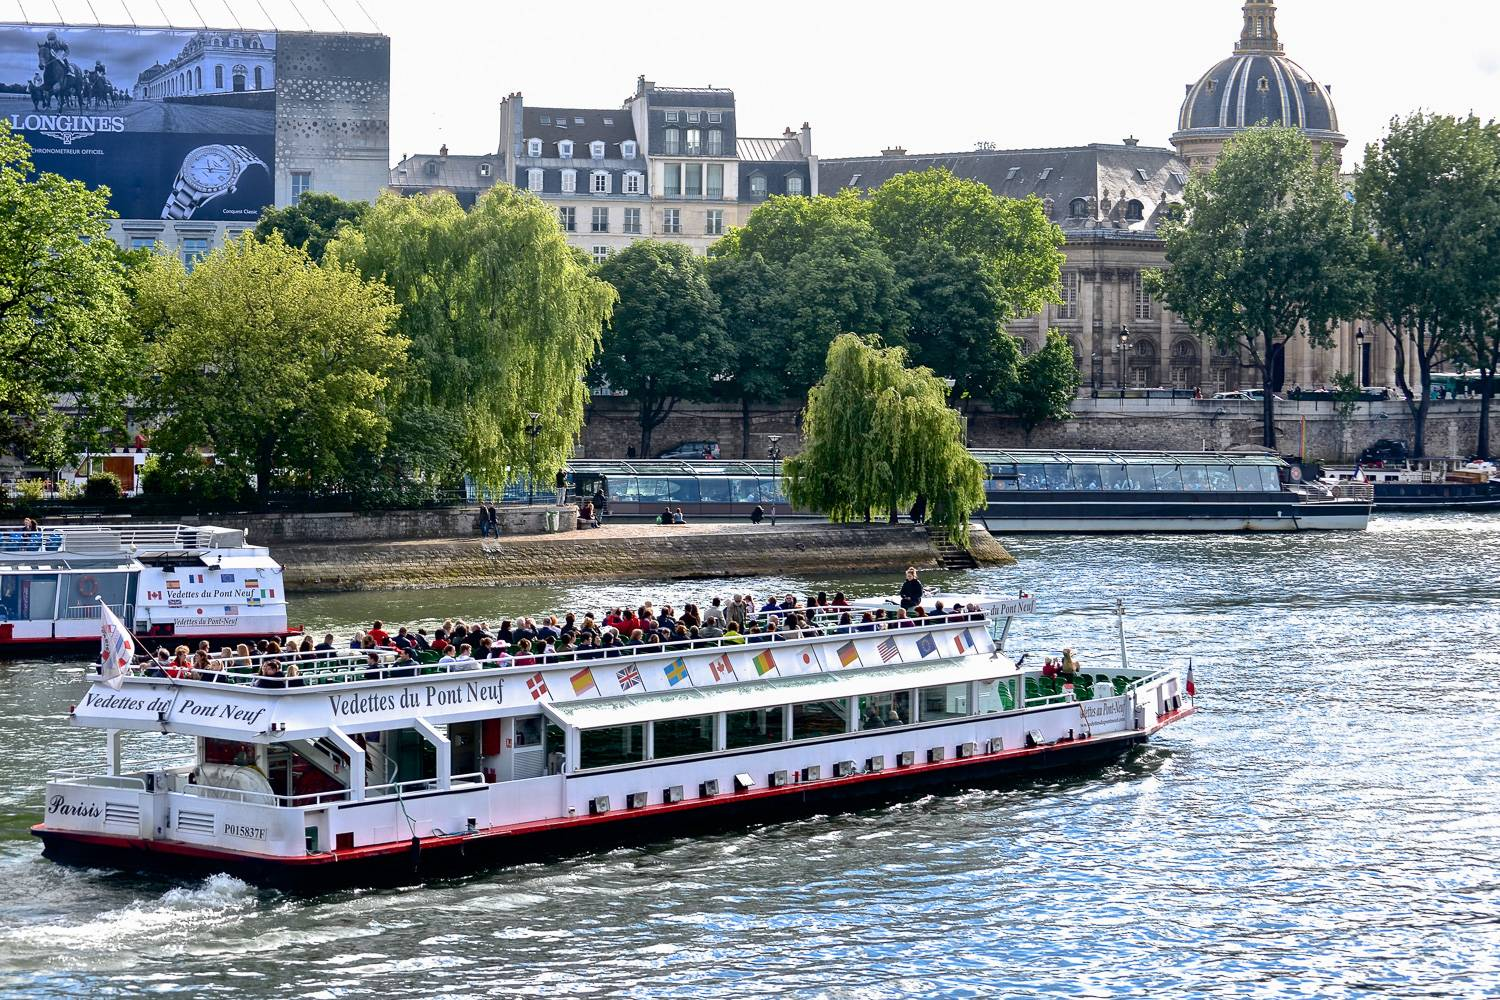 Image of a cruise boat filled with sightseers on the Seine in Paris.